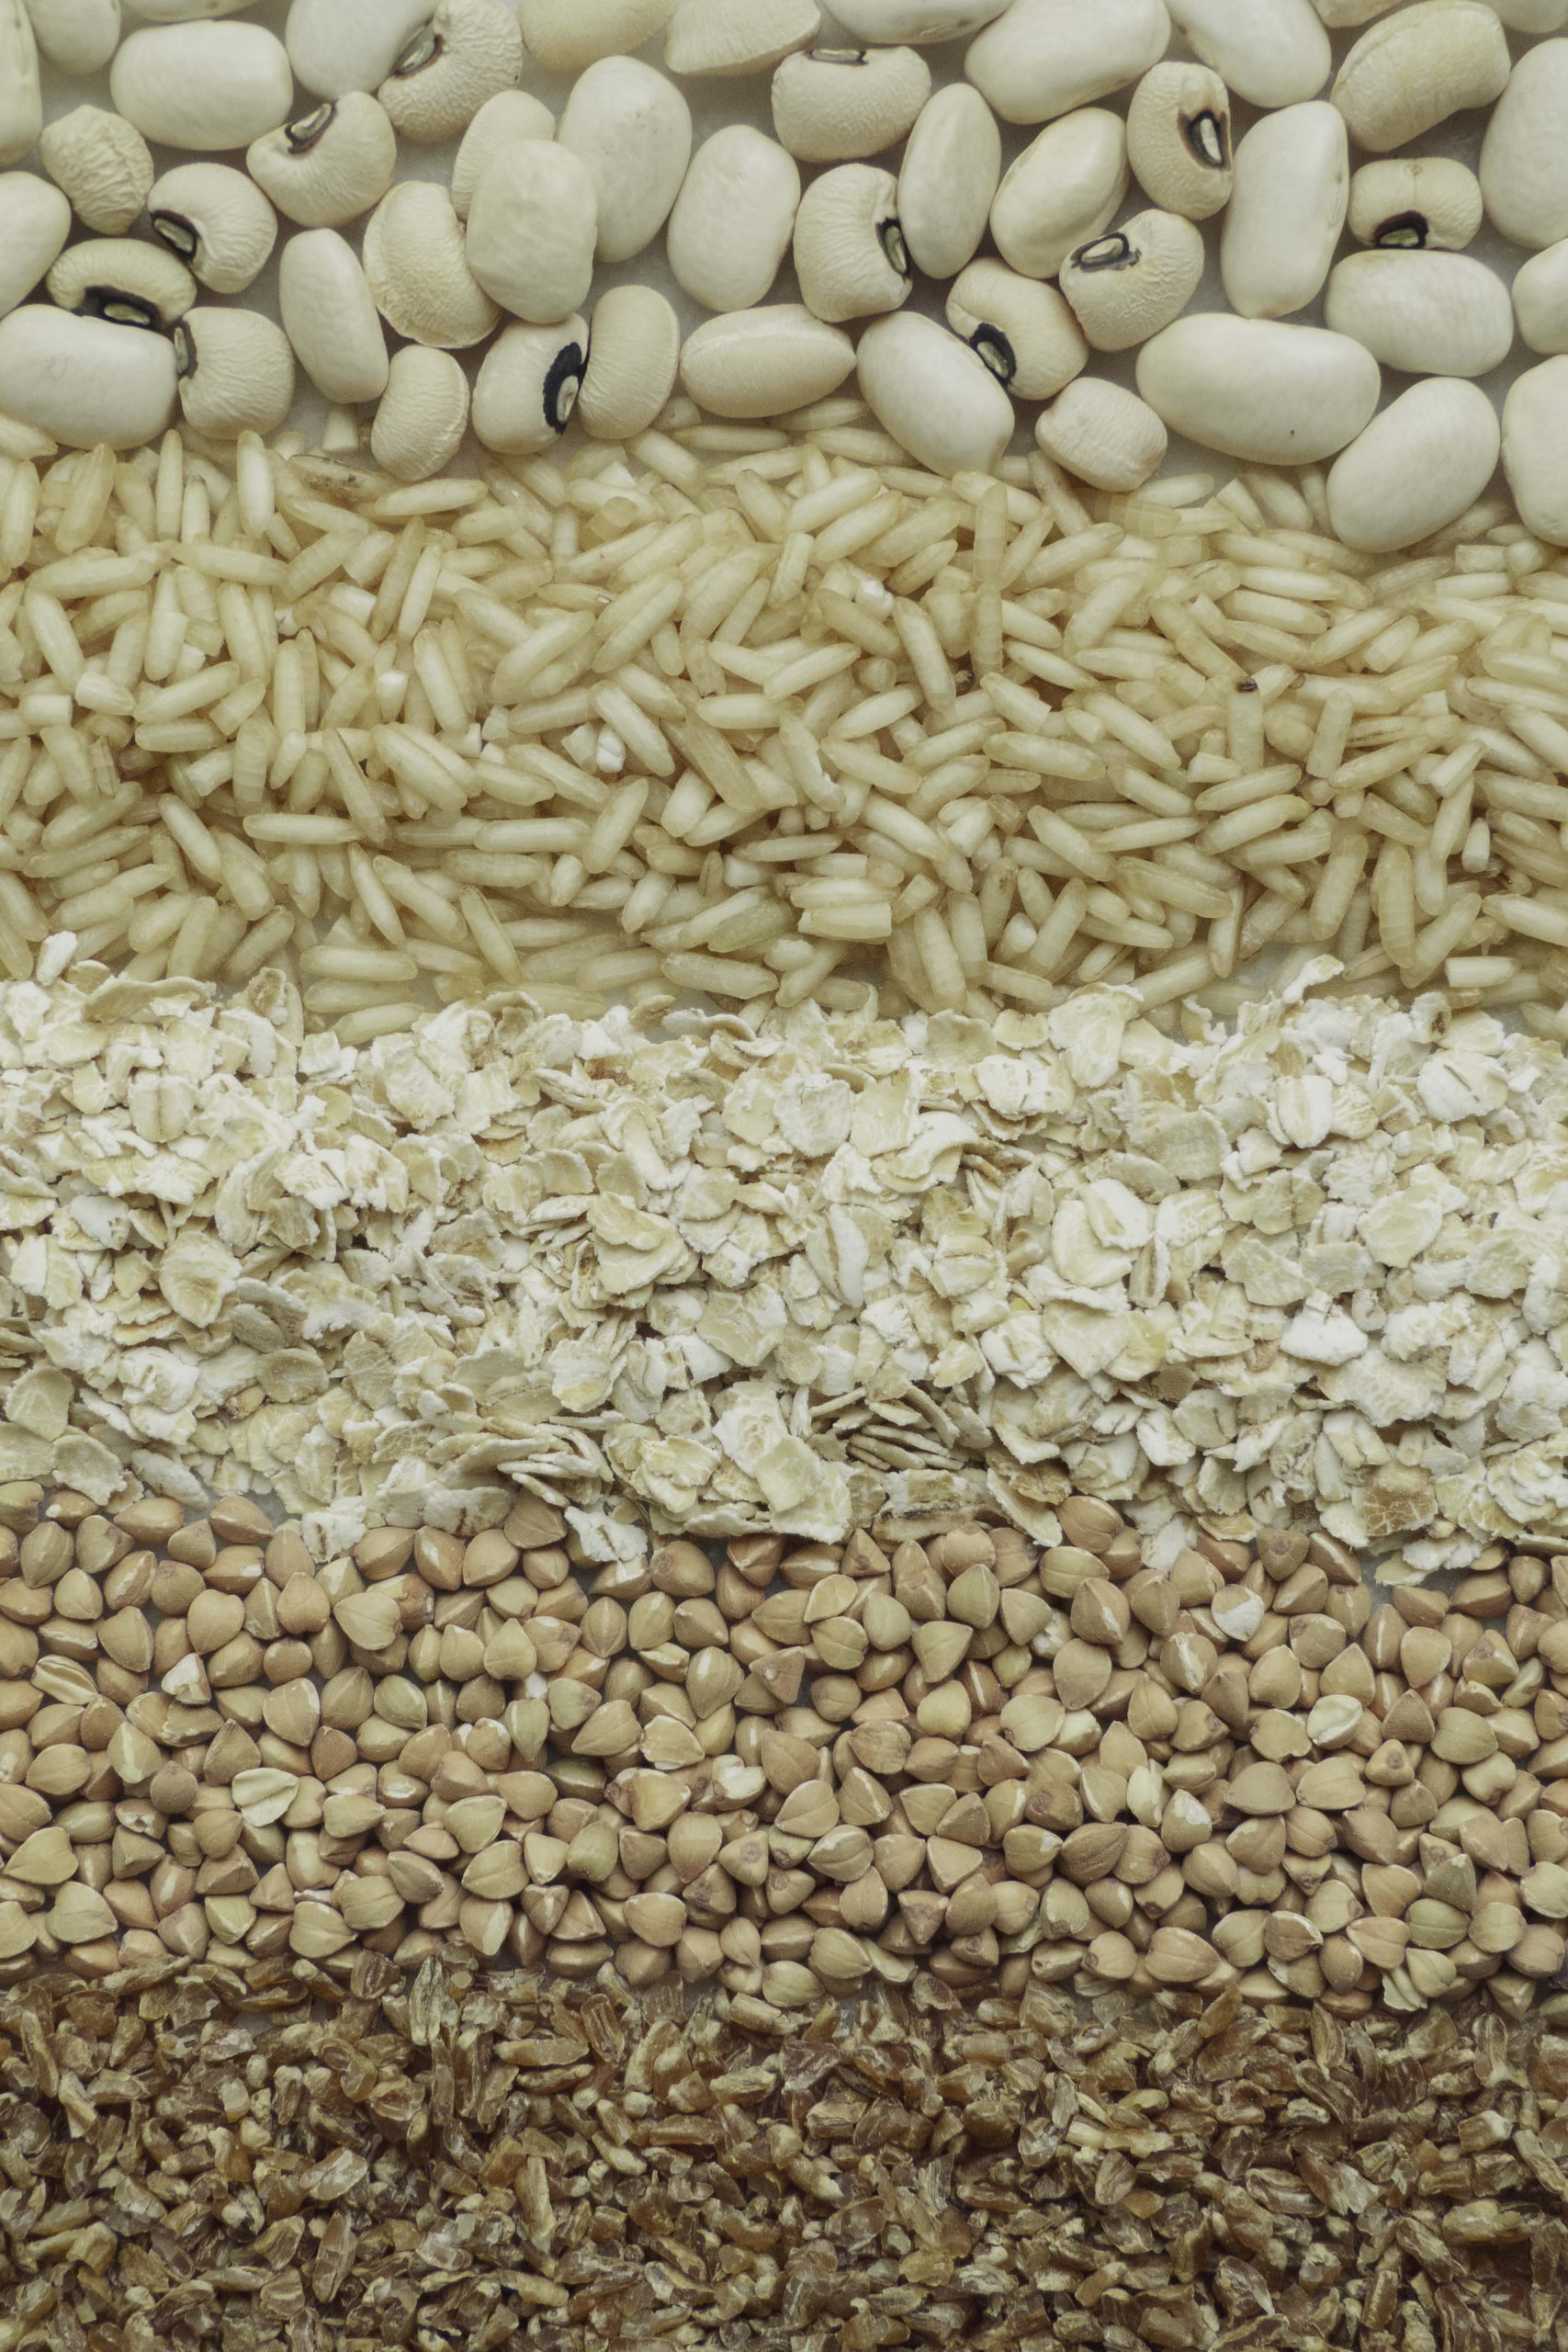 white and brown rice grains